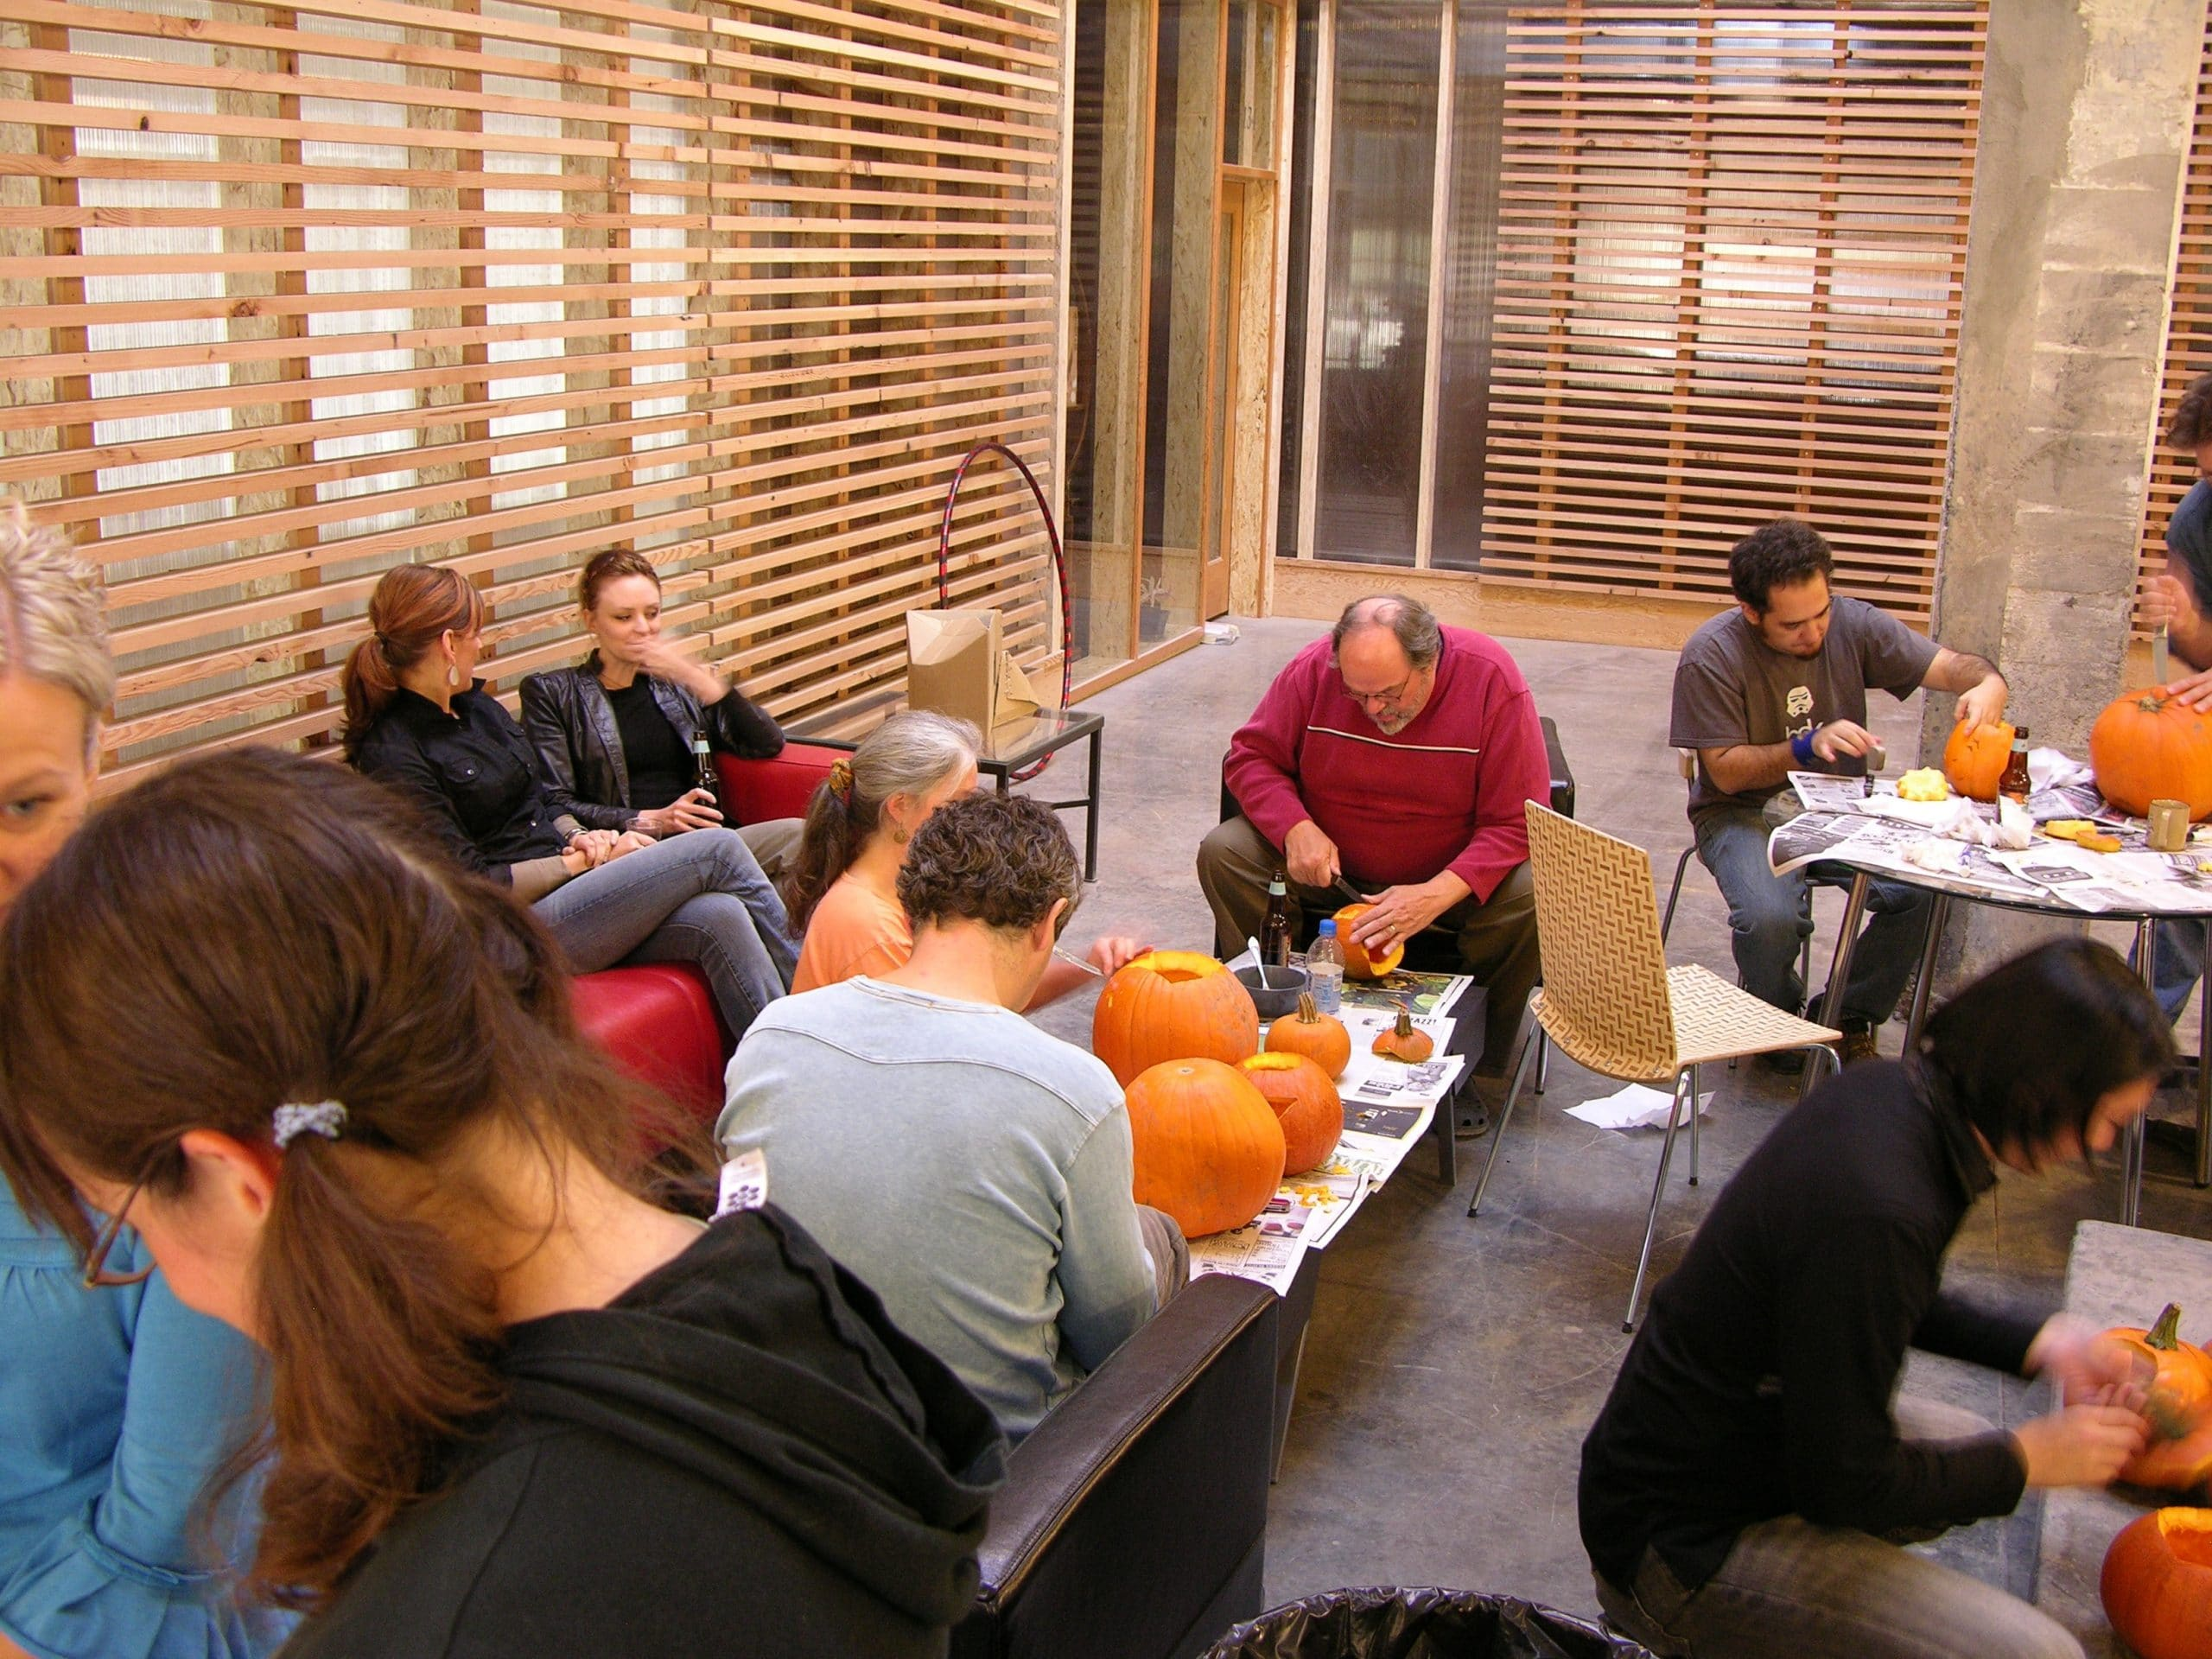 pumpkin-carving-group